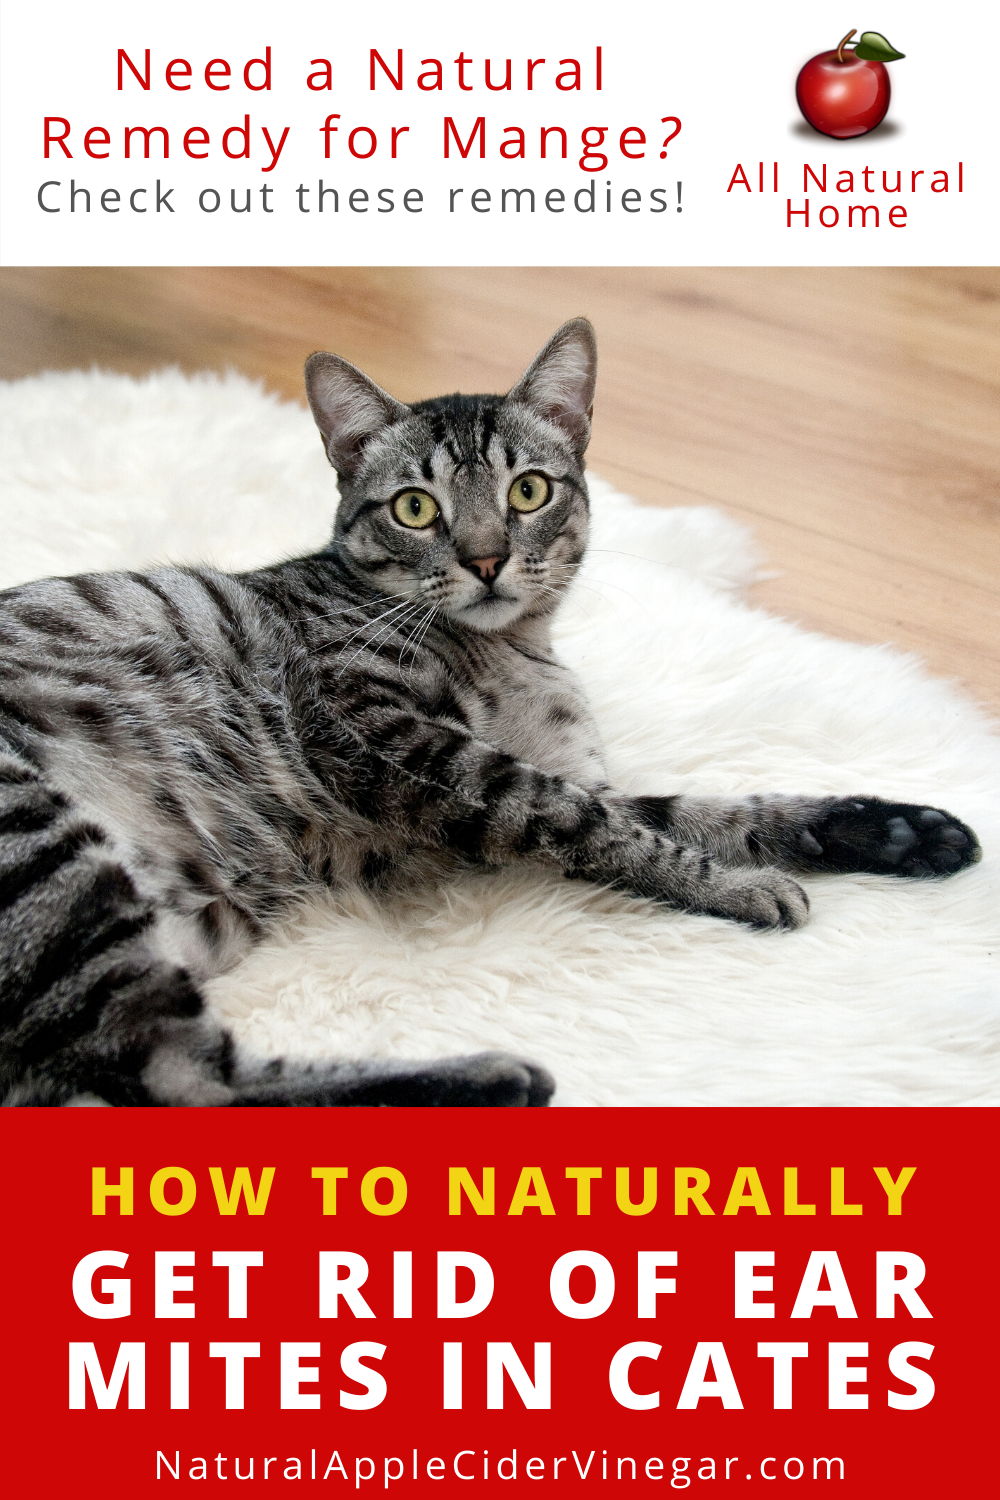 How To Get Rid Of Ear Mites In Cats Natural Home Remedy Cat Ear Mites Natural Home Remedies Cats